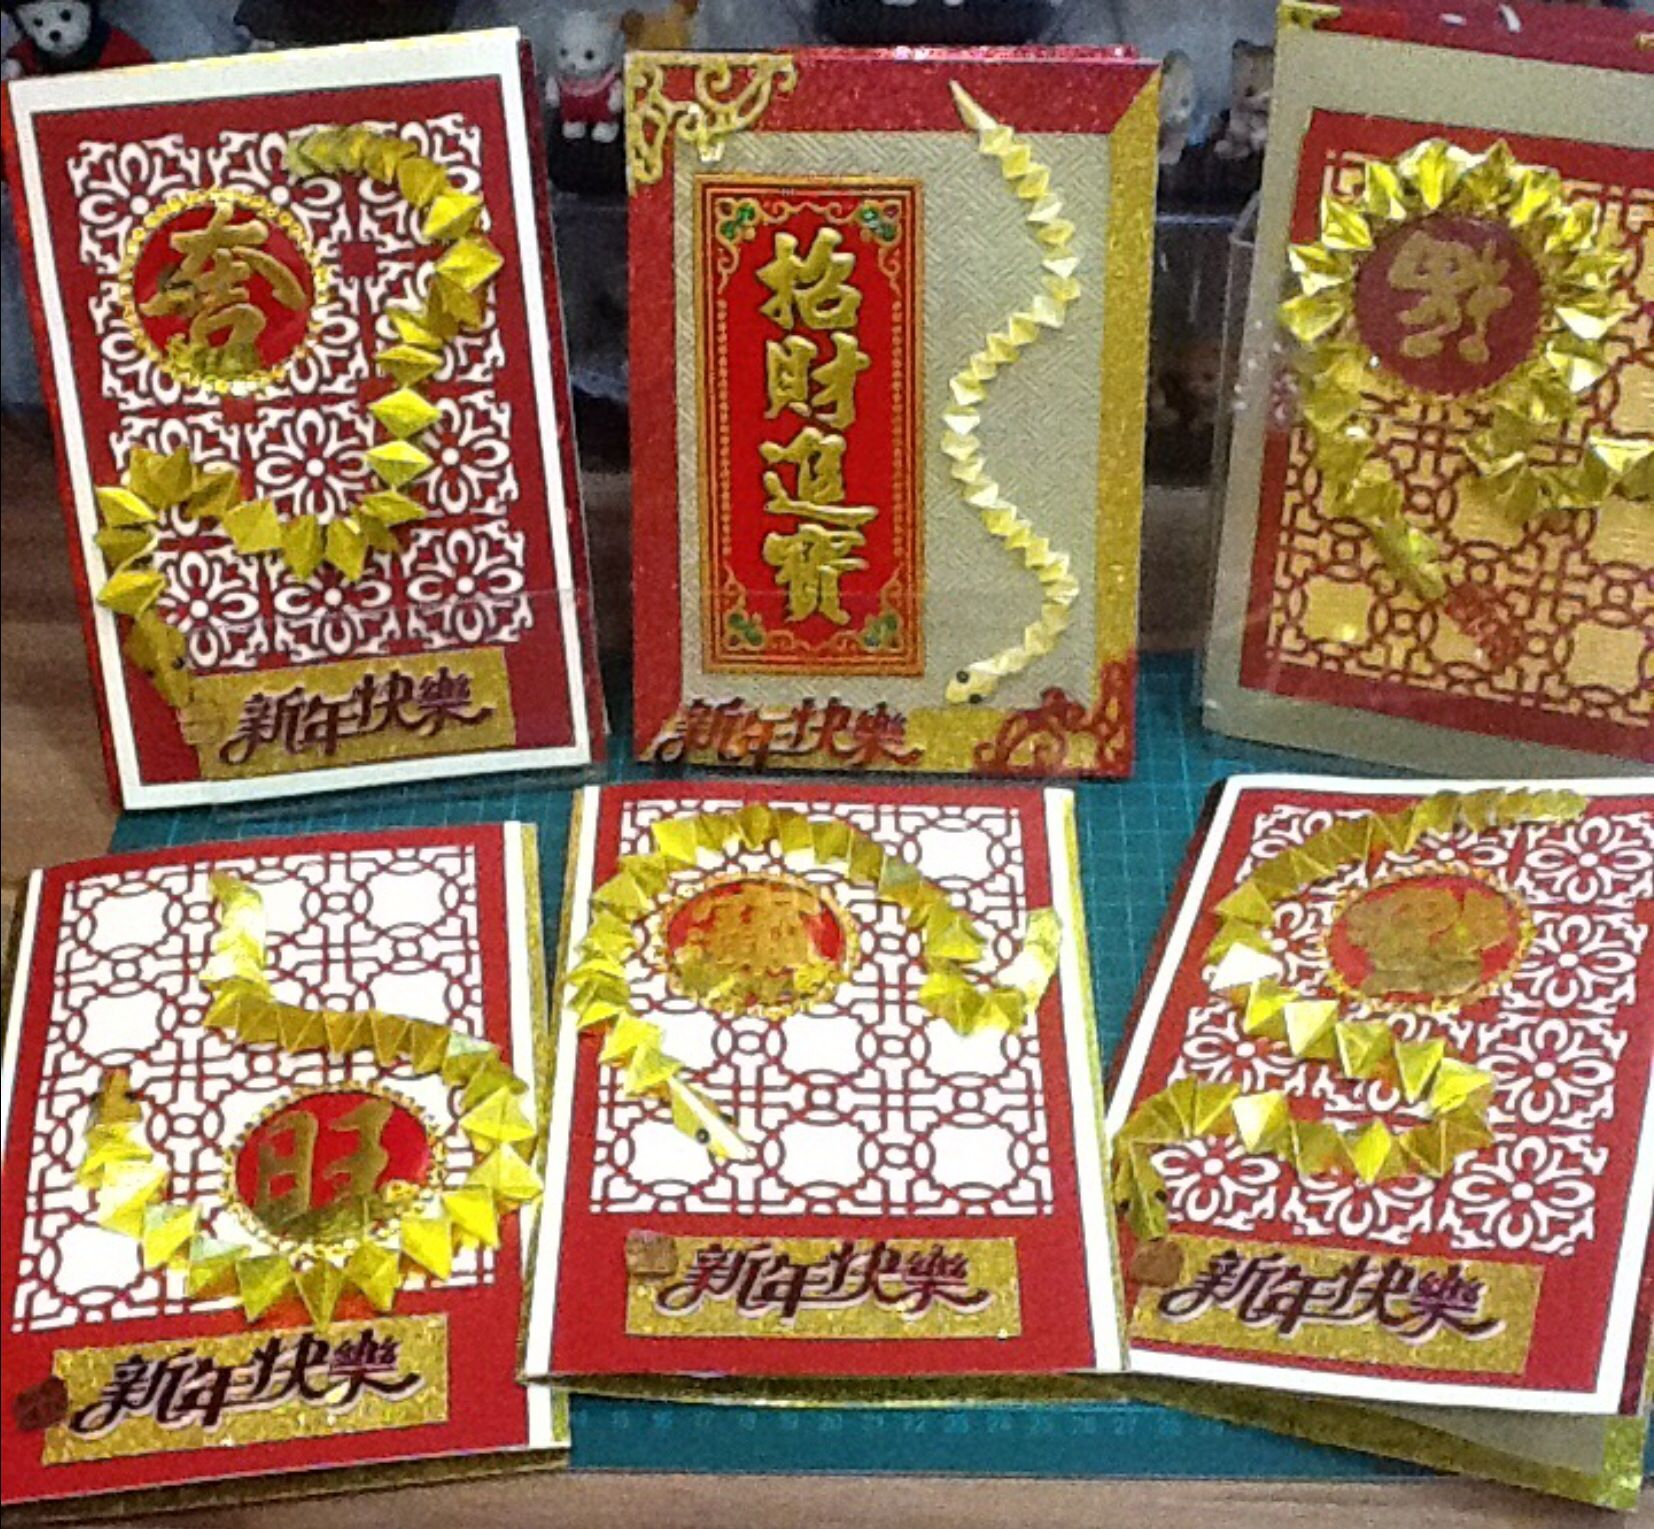 2013 Chinese New Year card. Snake year pop up cards